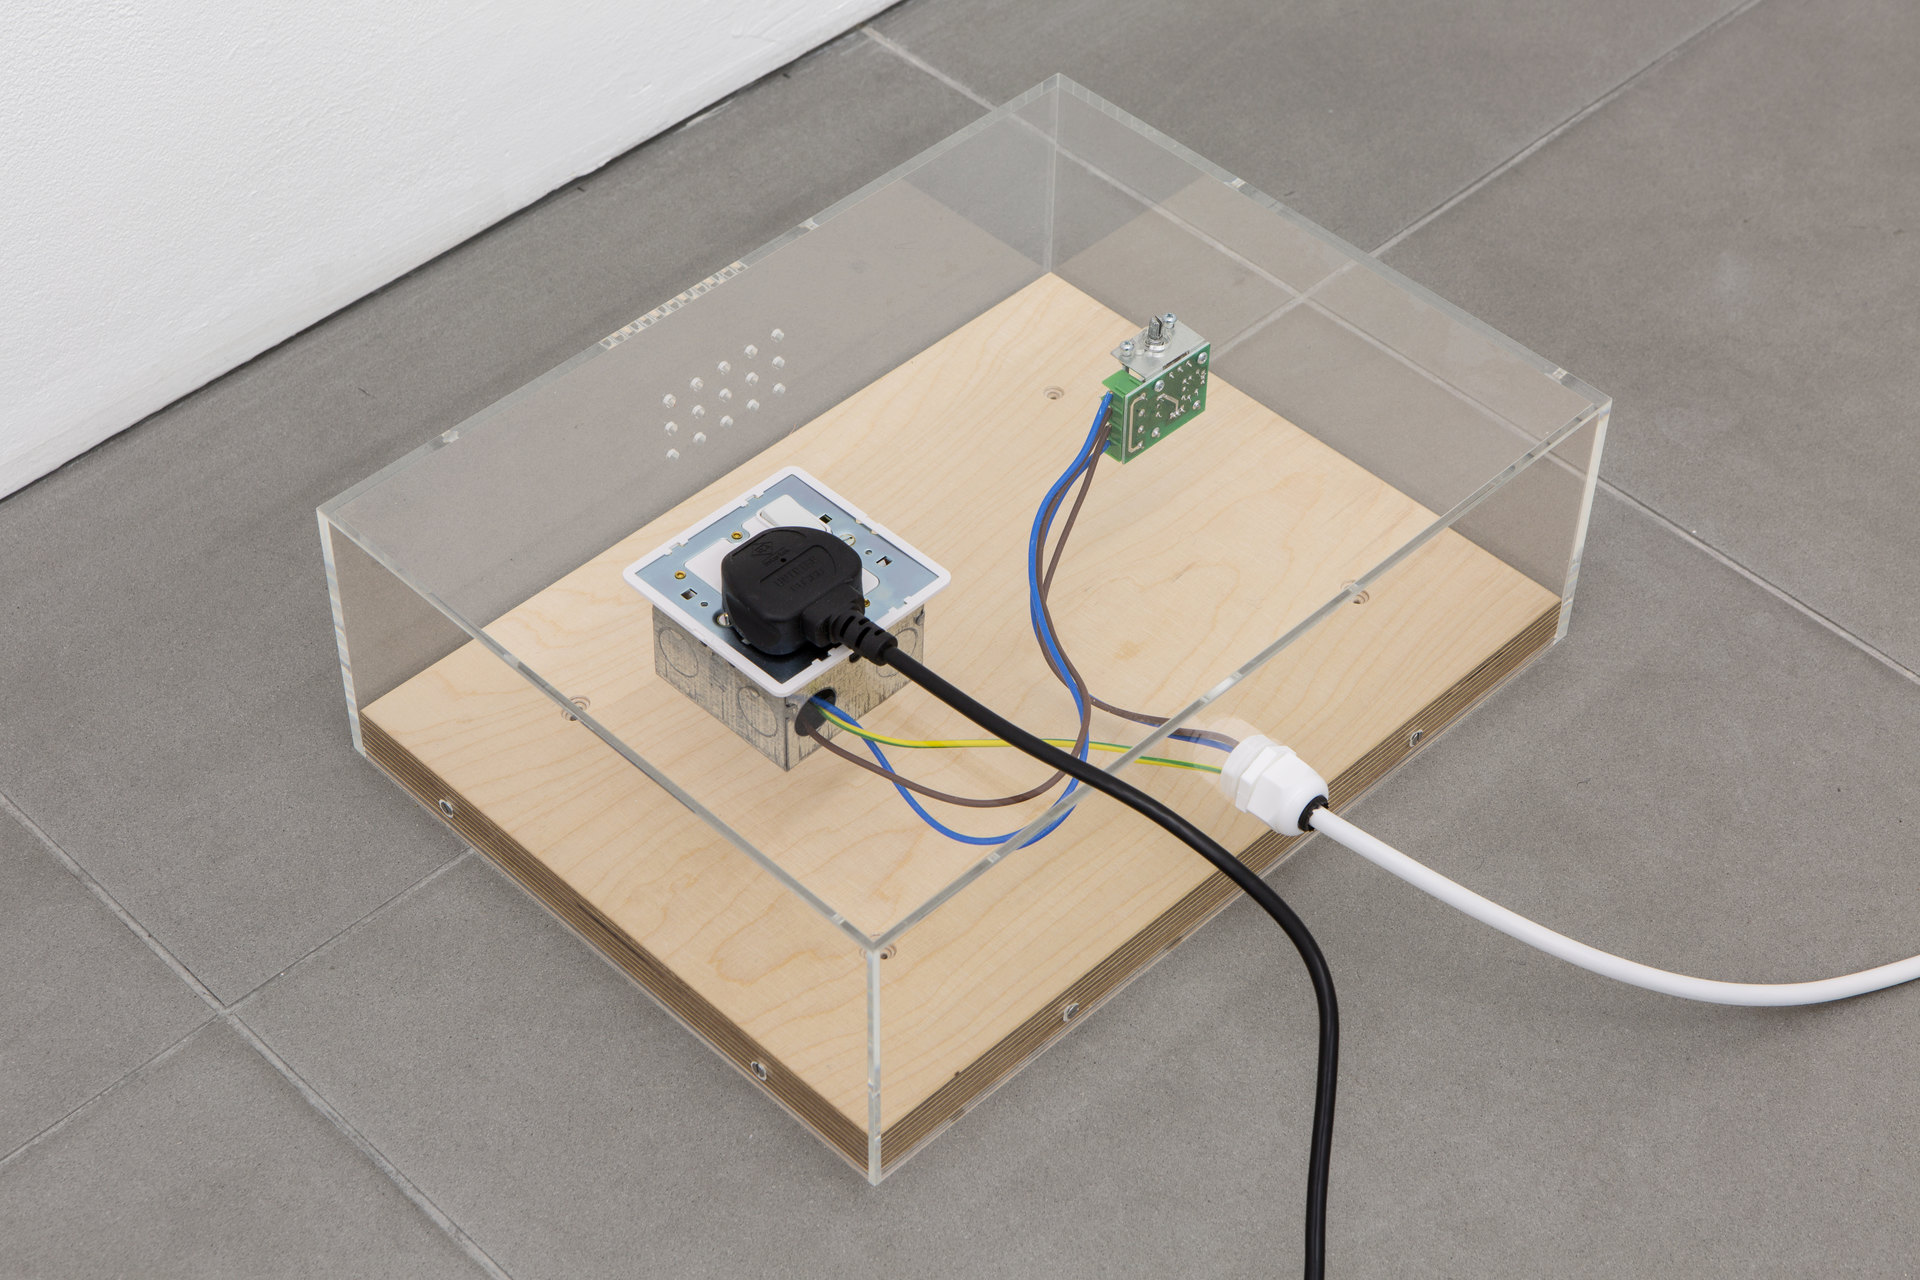 Patricia L. Boyd, 'Treatment', 2019, Fan, socket, motor speed control, electrical cable, cable gland, acrylic, plywood, fixings, Cell Project Space